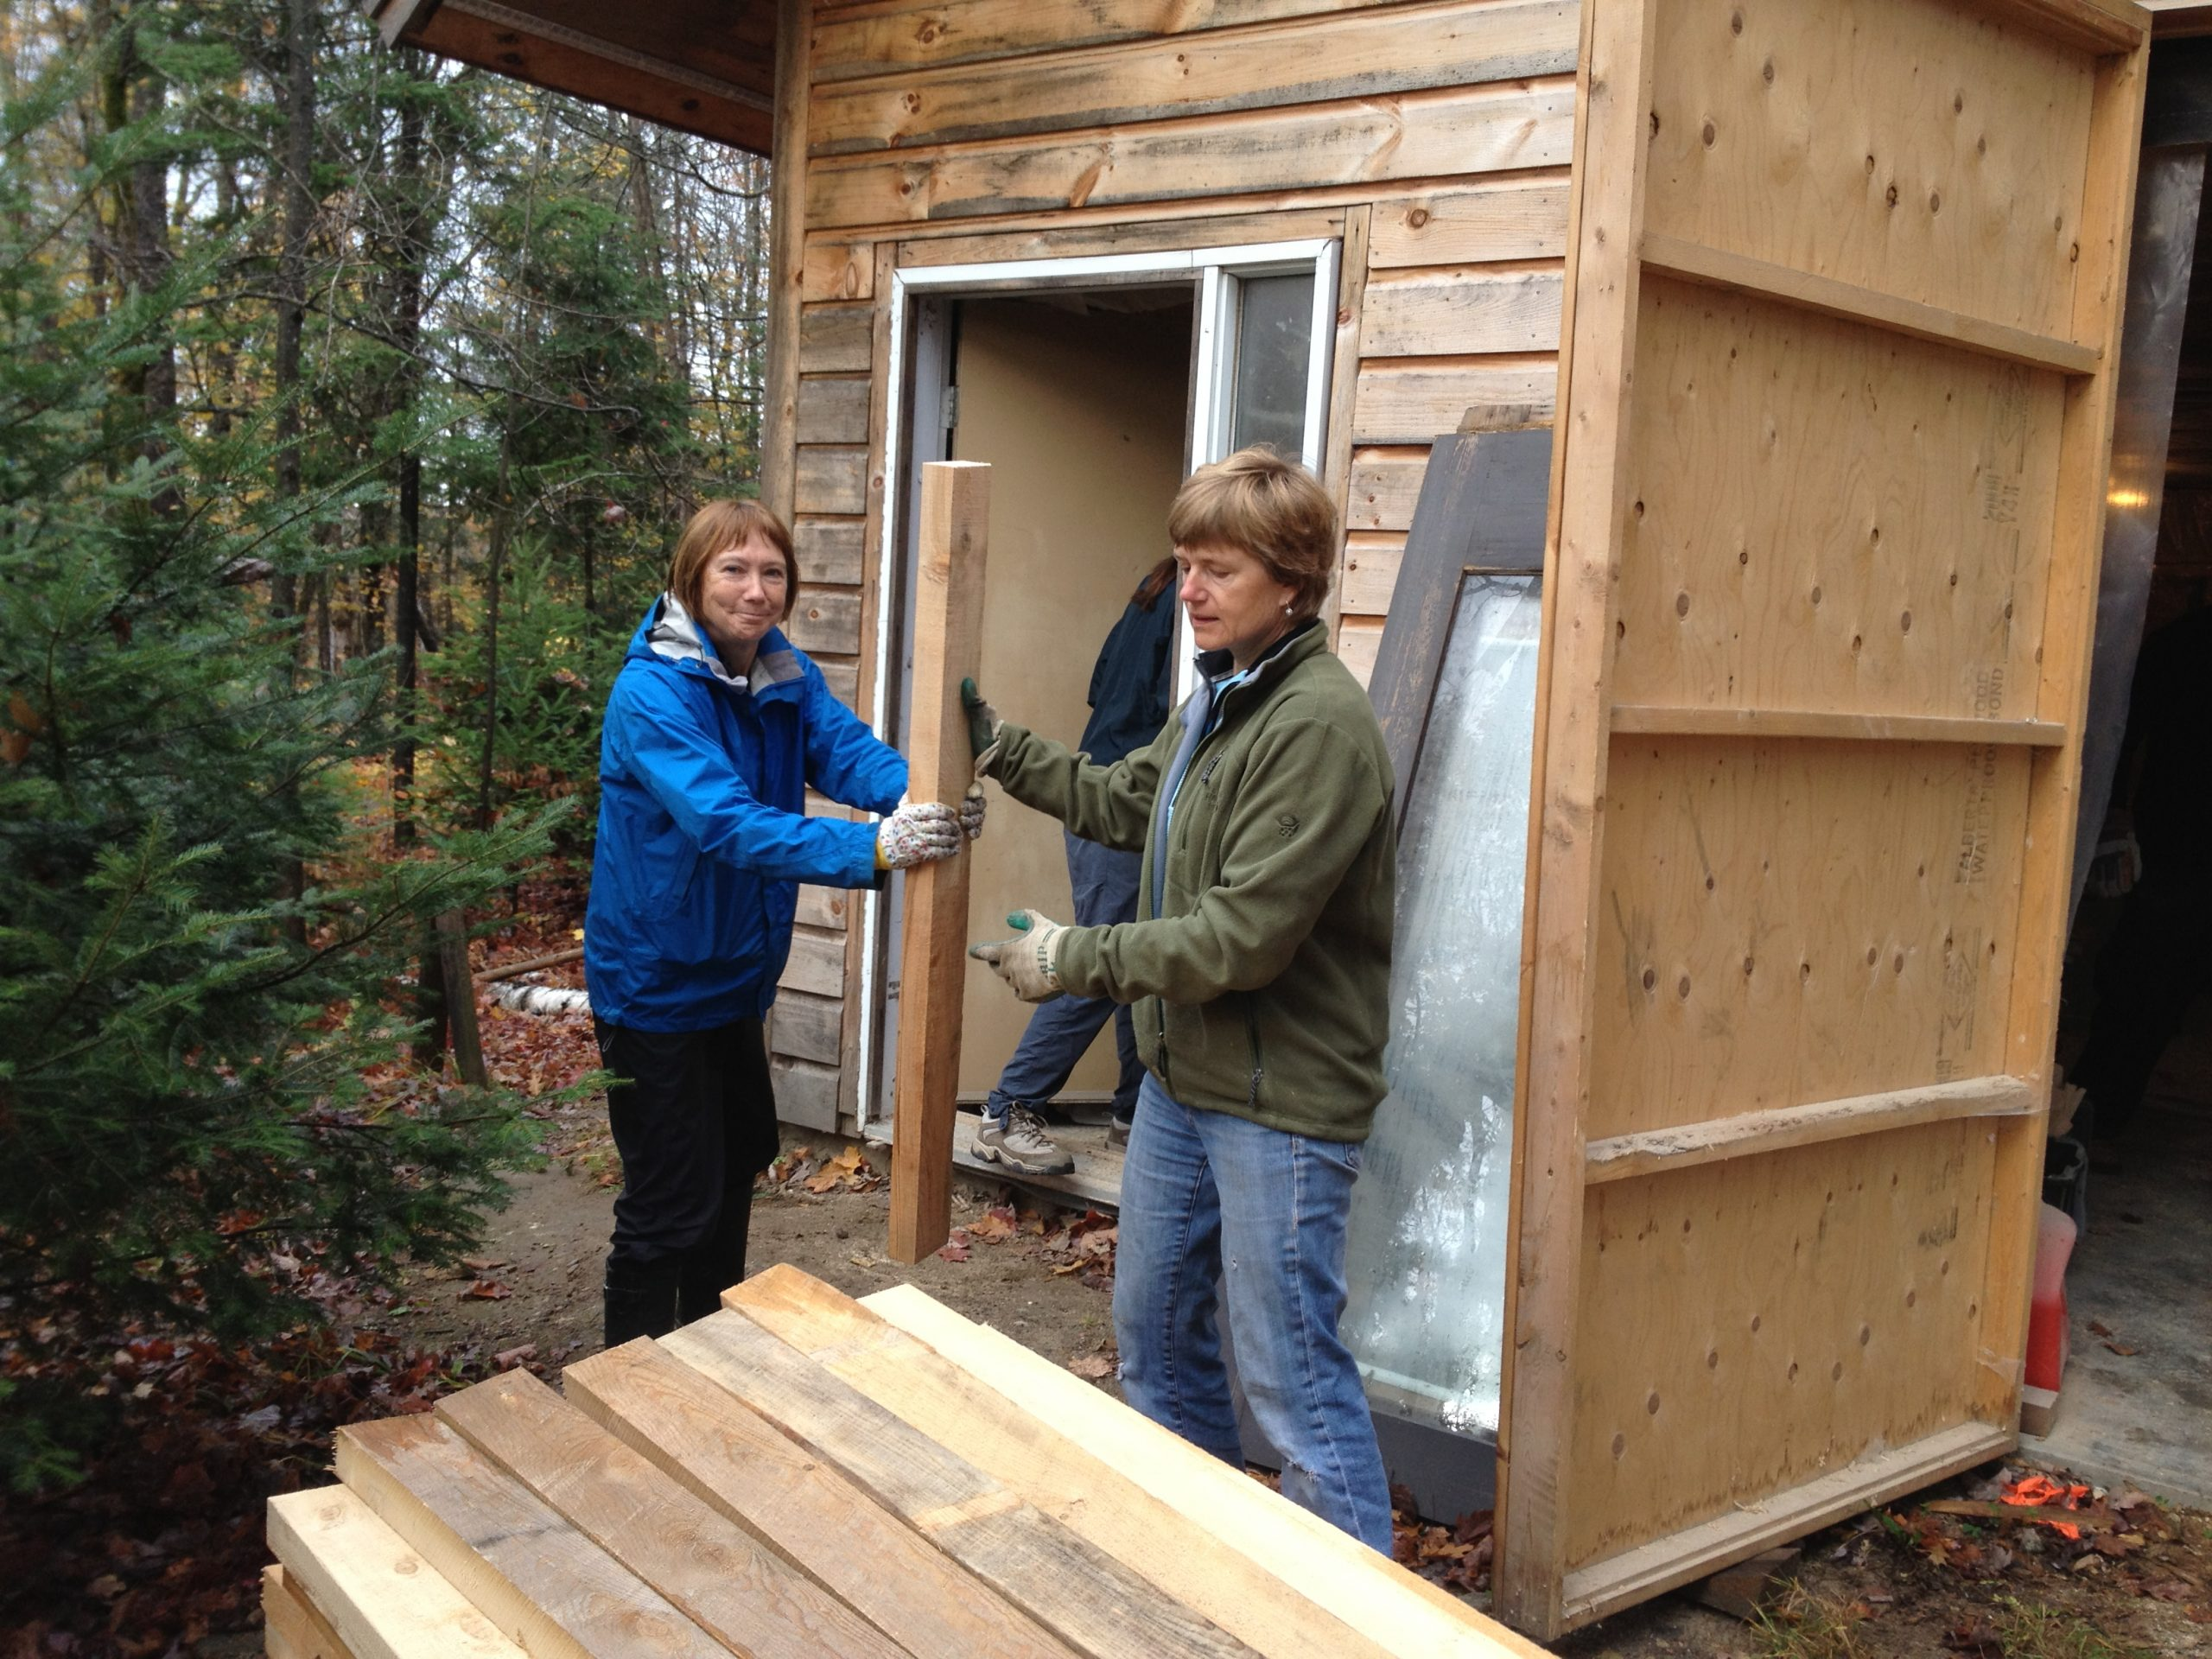 Two people working on building a shed